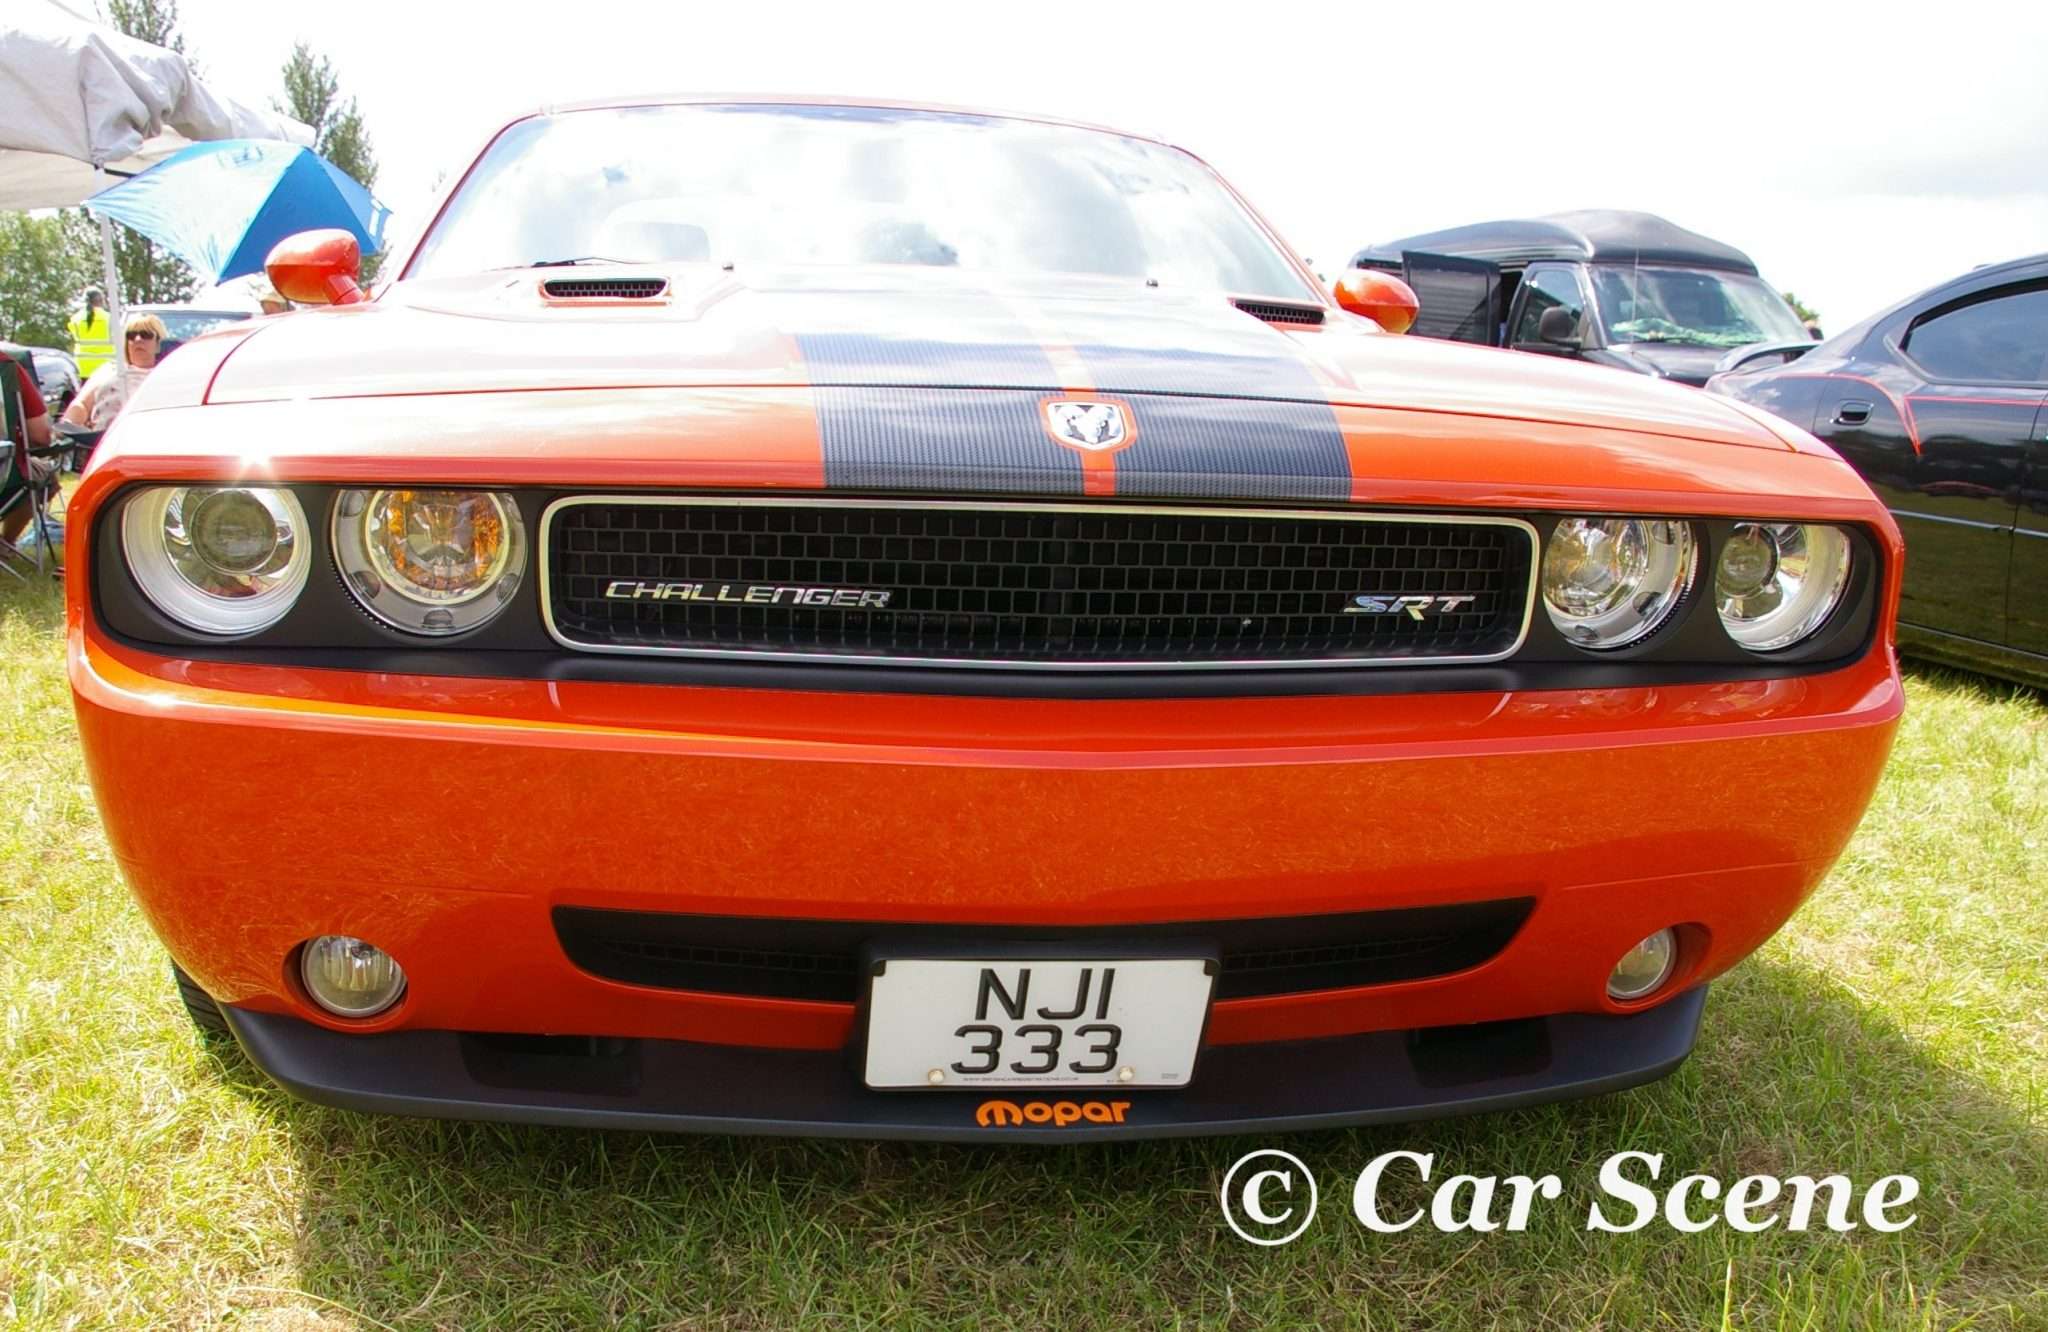 2008 Dodge Challenger SRT8 front view